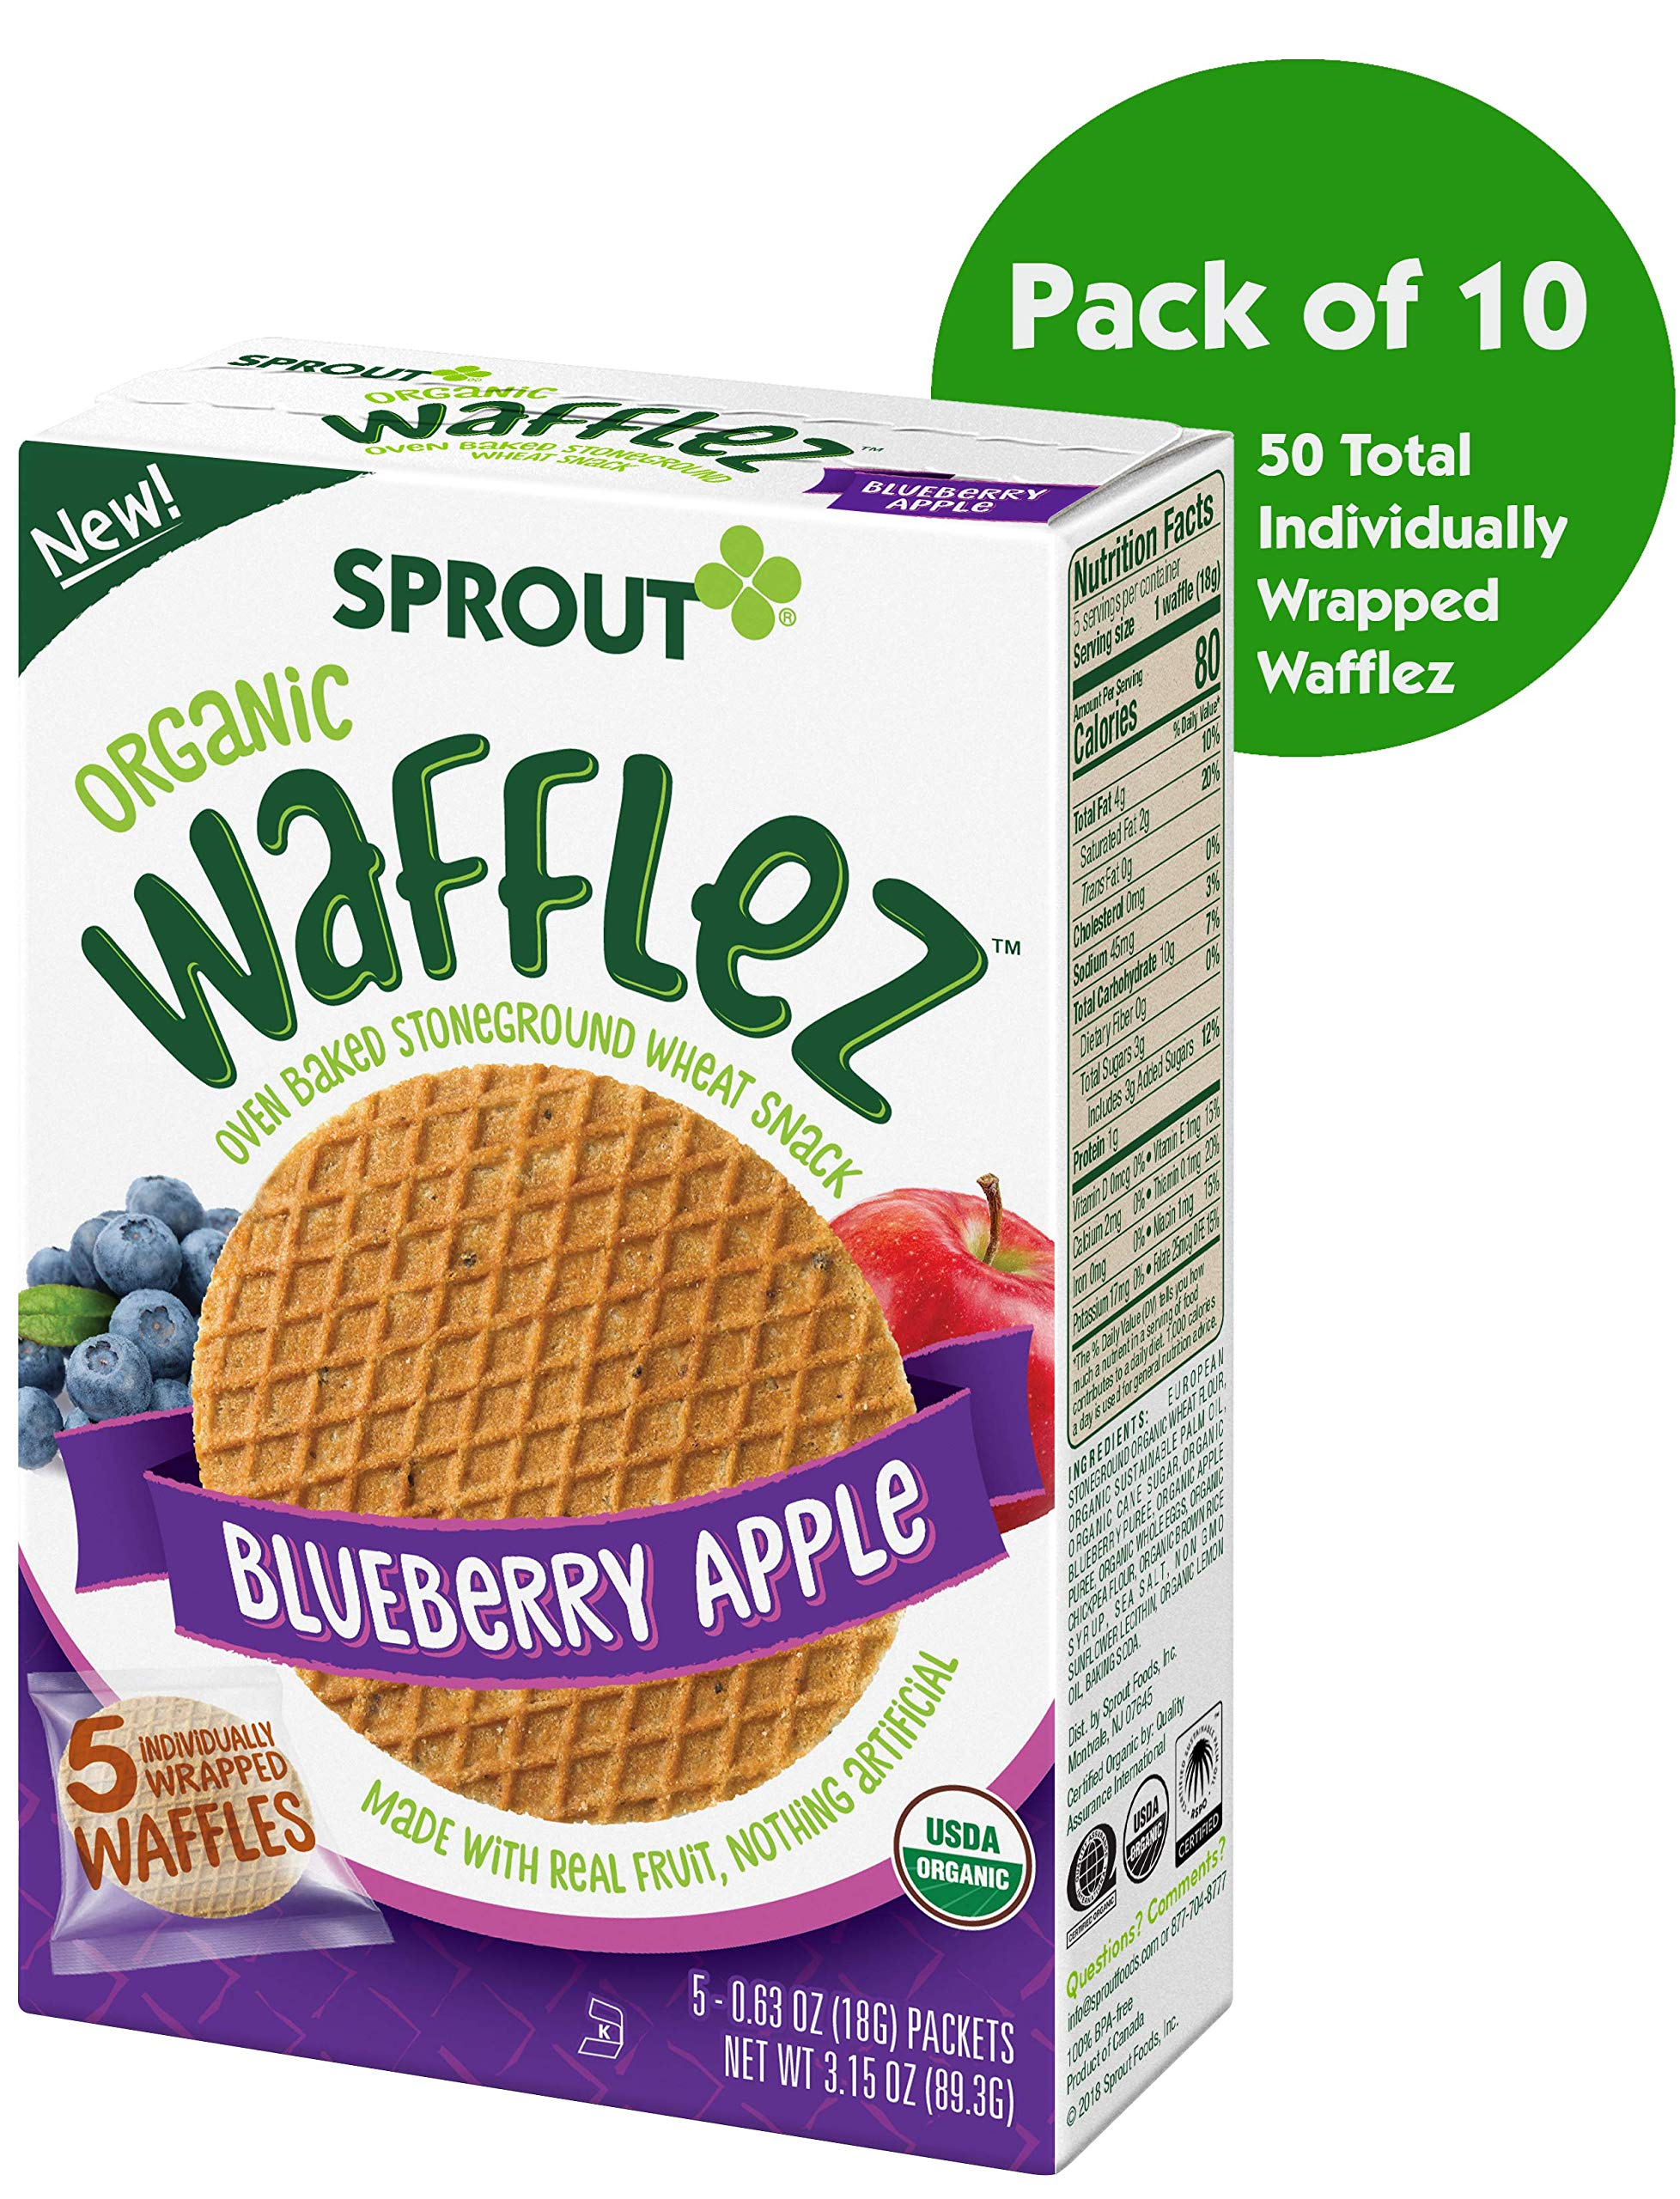 Sprout Organic Wafflez Toddler Snacks, Blueberry Apple, 5 Count Box of Individually Wrapped Waffles (Pack of 10 Boxes)